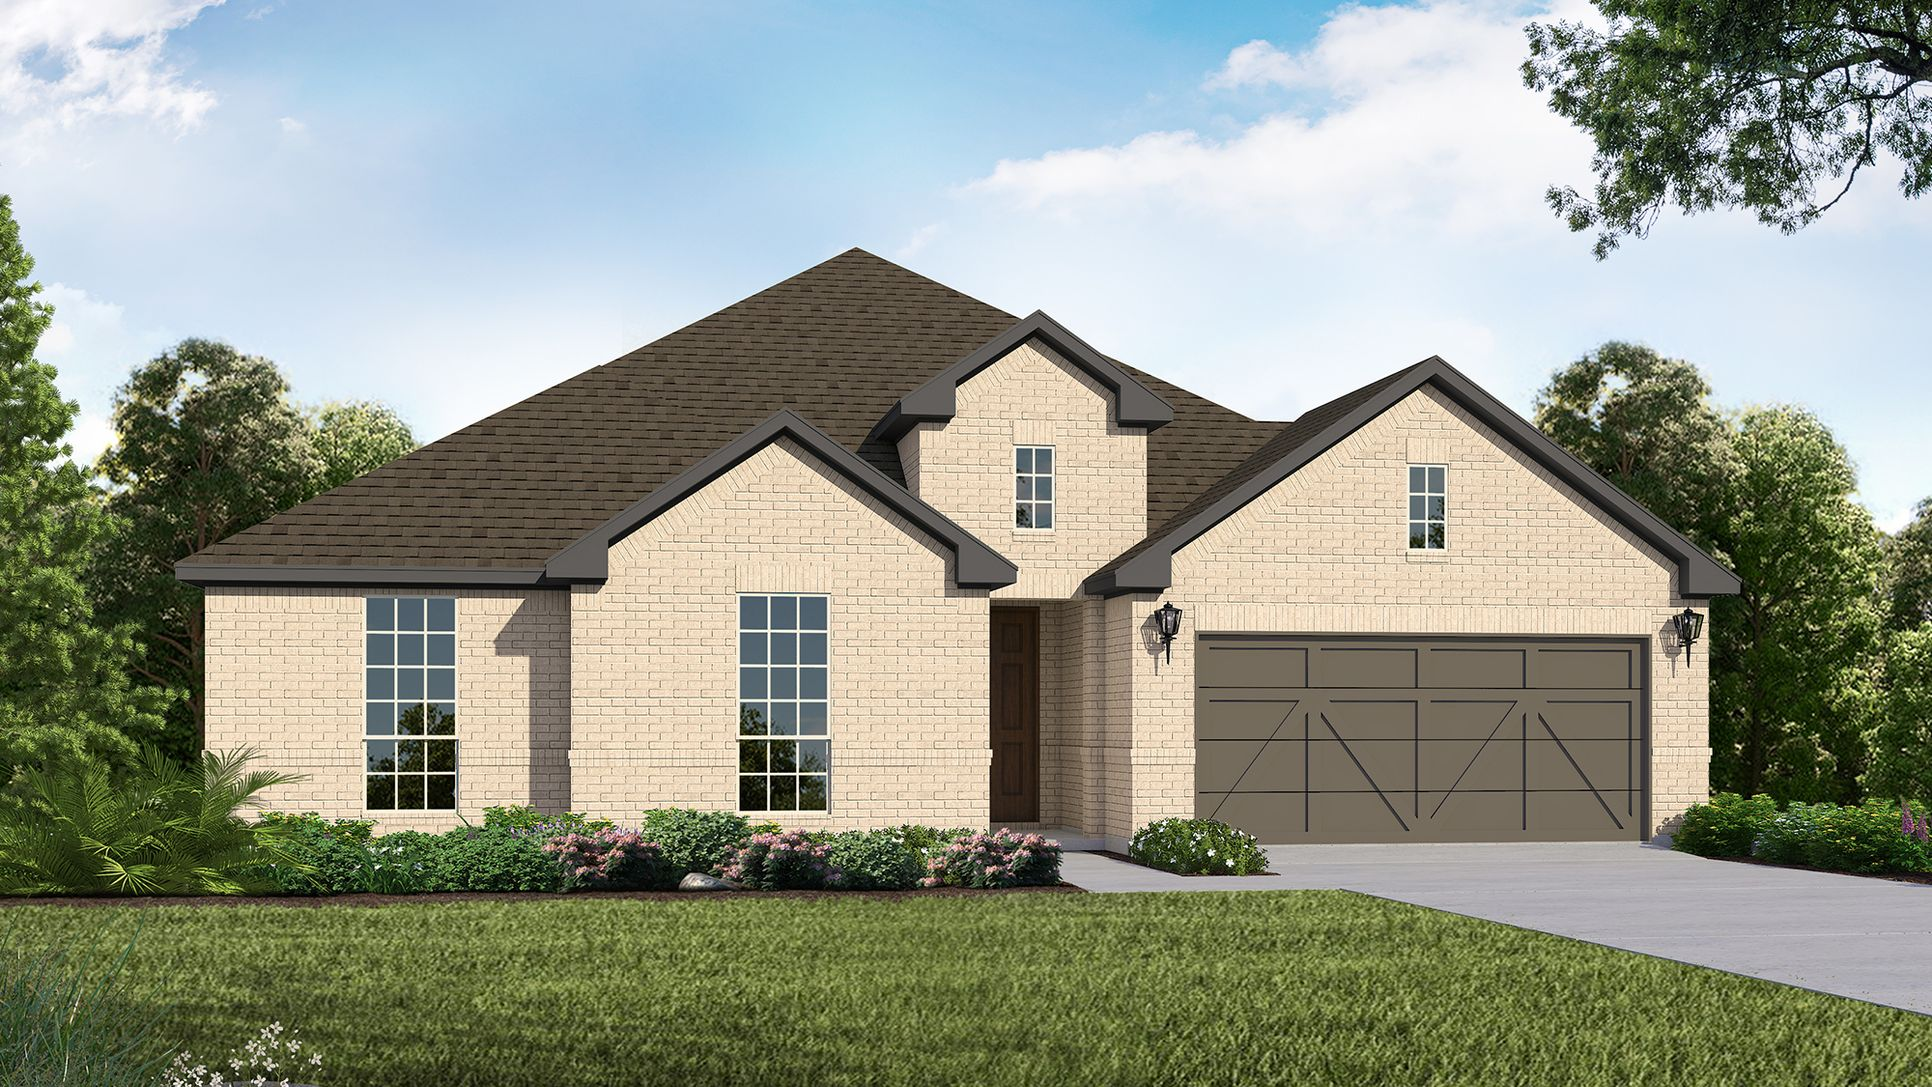 Exterior:Plan 1682 Elevation A by American Legend